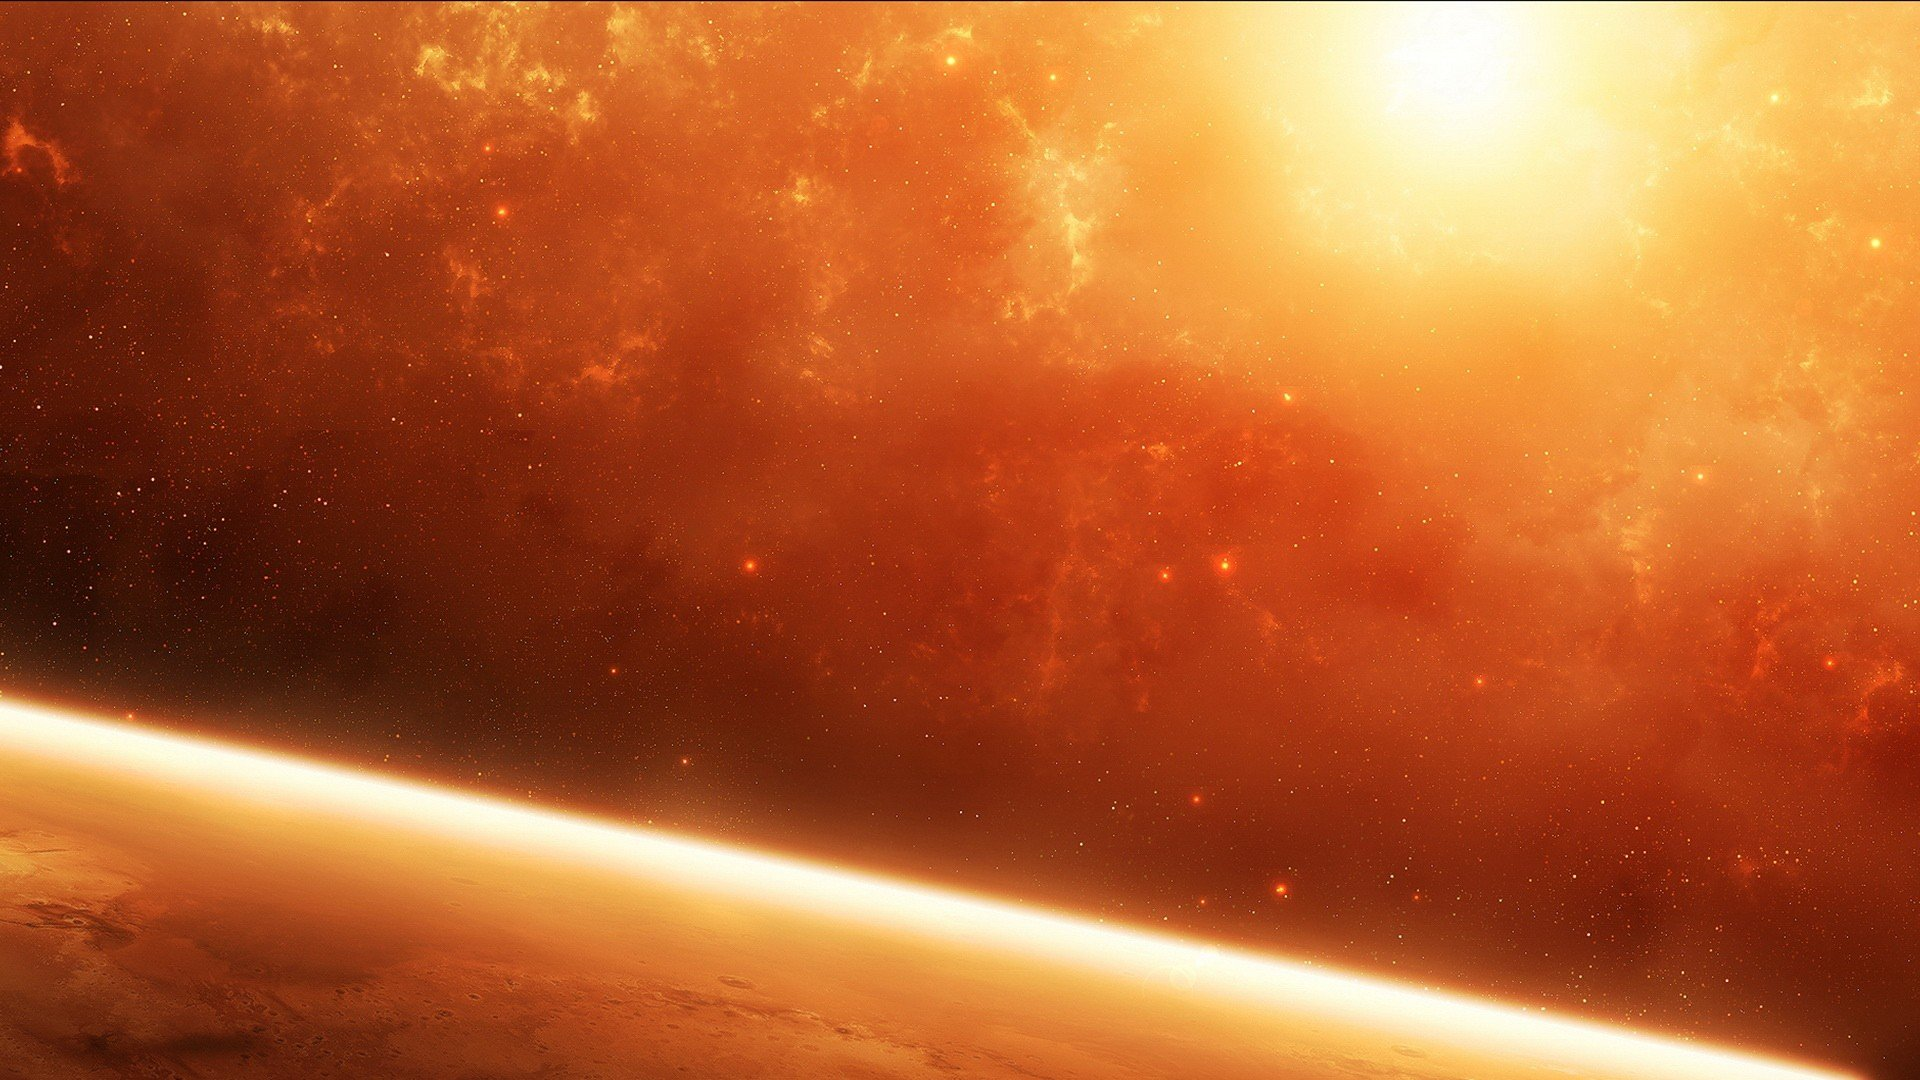 Outer space stars planets orange wallpaper | 1920x1080 ...